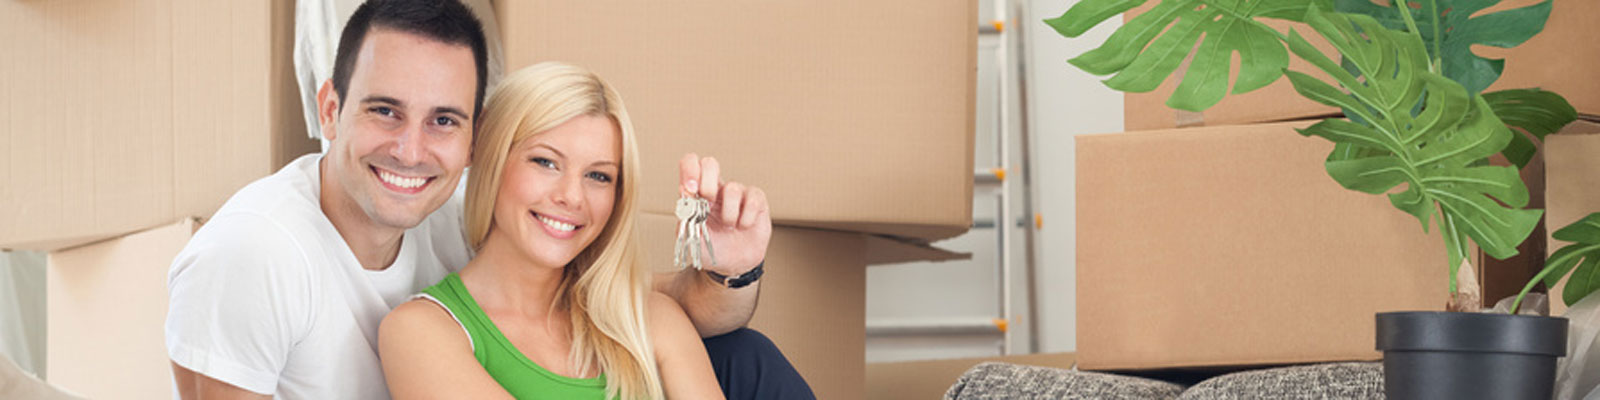 couple move into new home surrounded by boxes